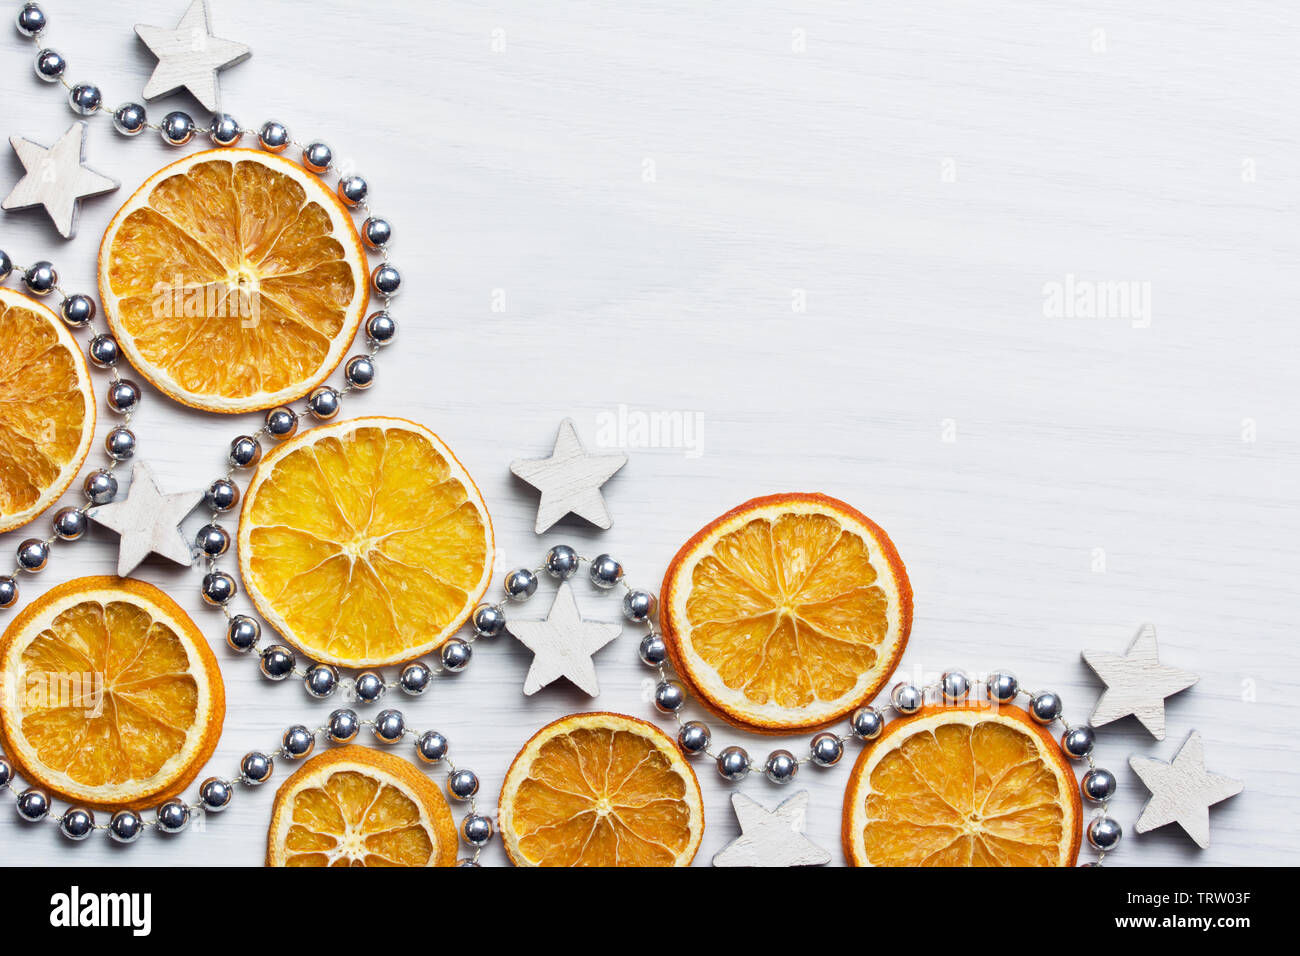 Christmas composition with dried oranges, white stars and silver bead chain - white background - close-up, text space - Stock Image